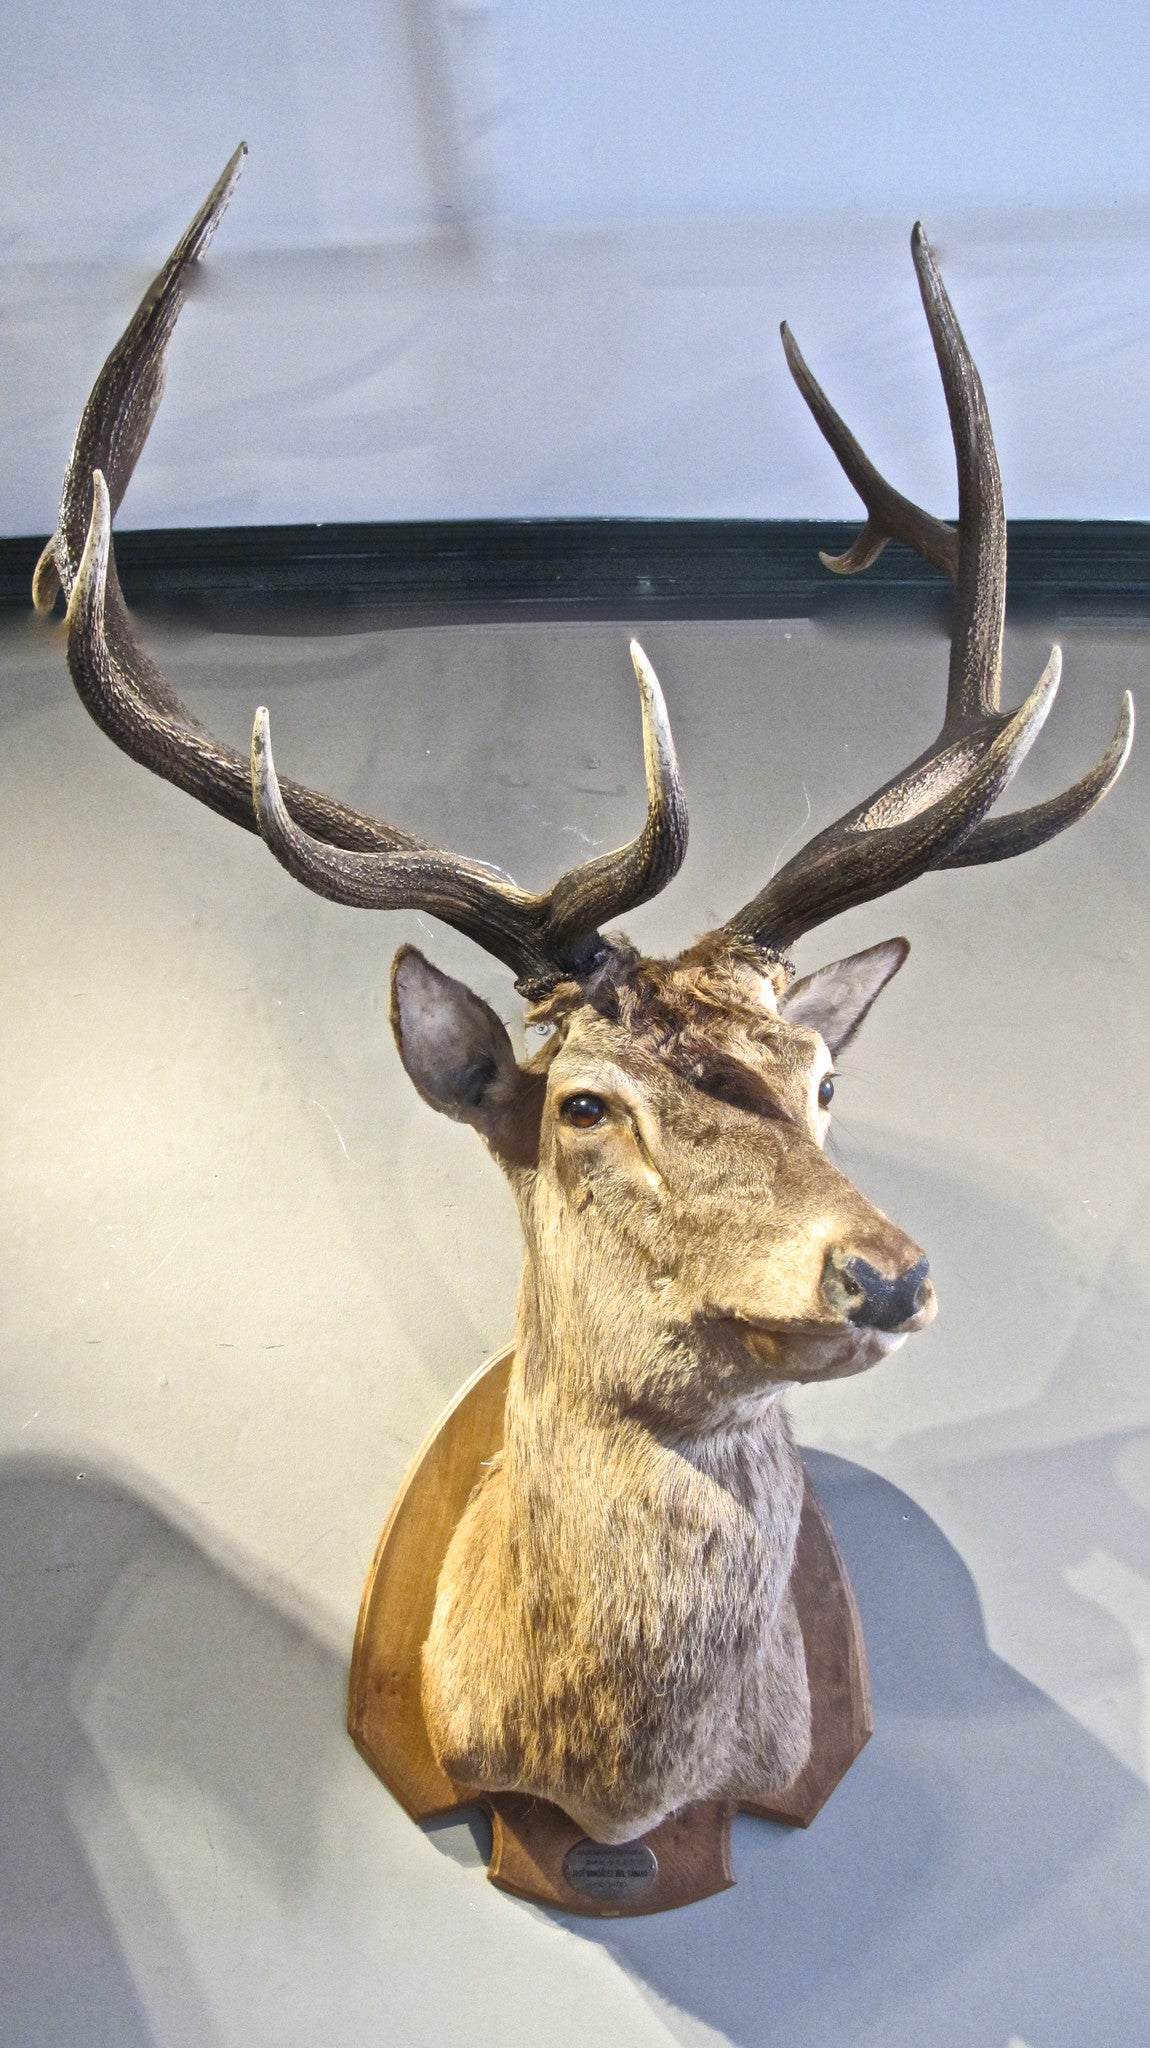 An extremely impressive and beautifully modelled taxidermy specimen of a stag.